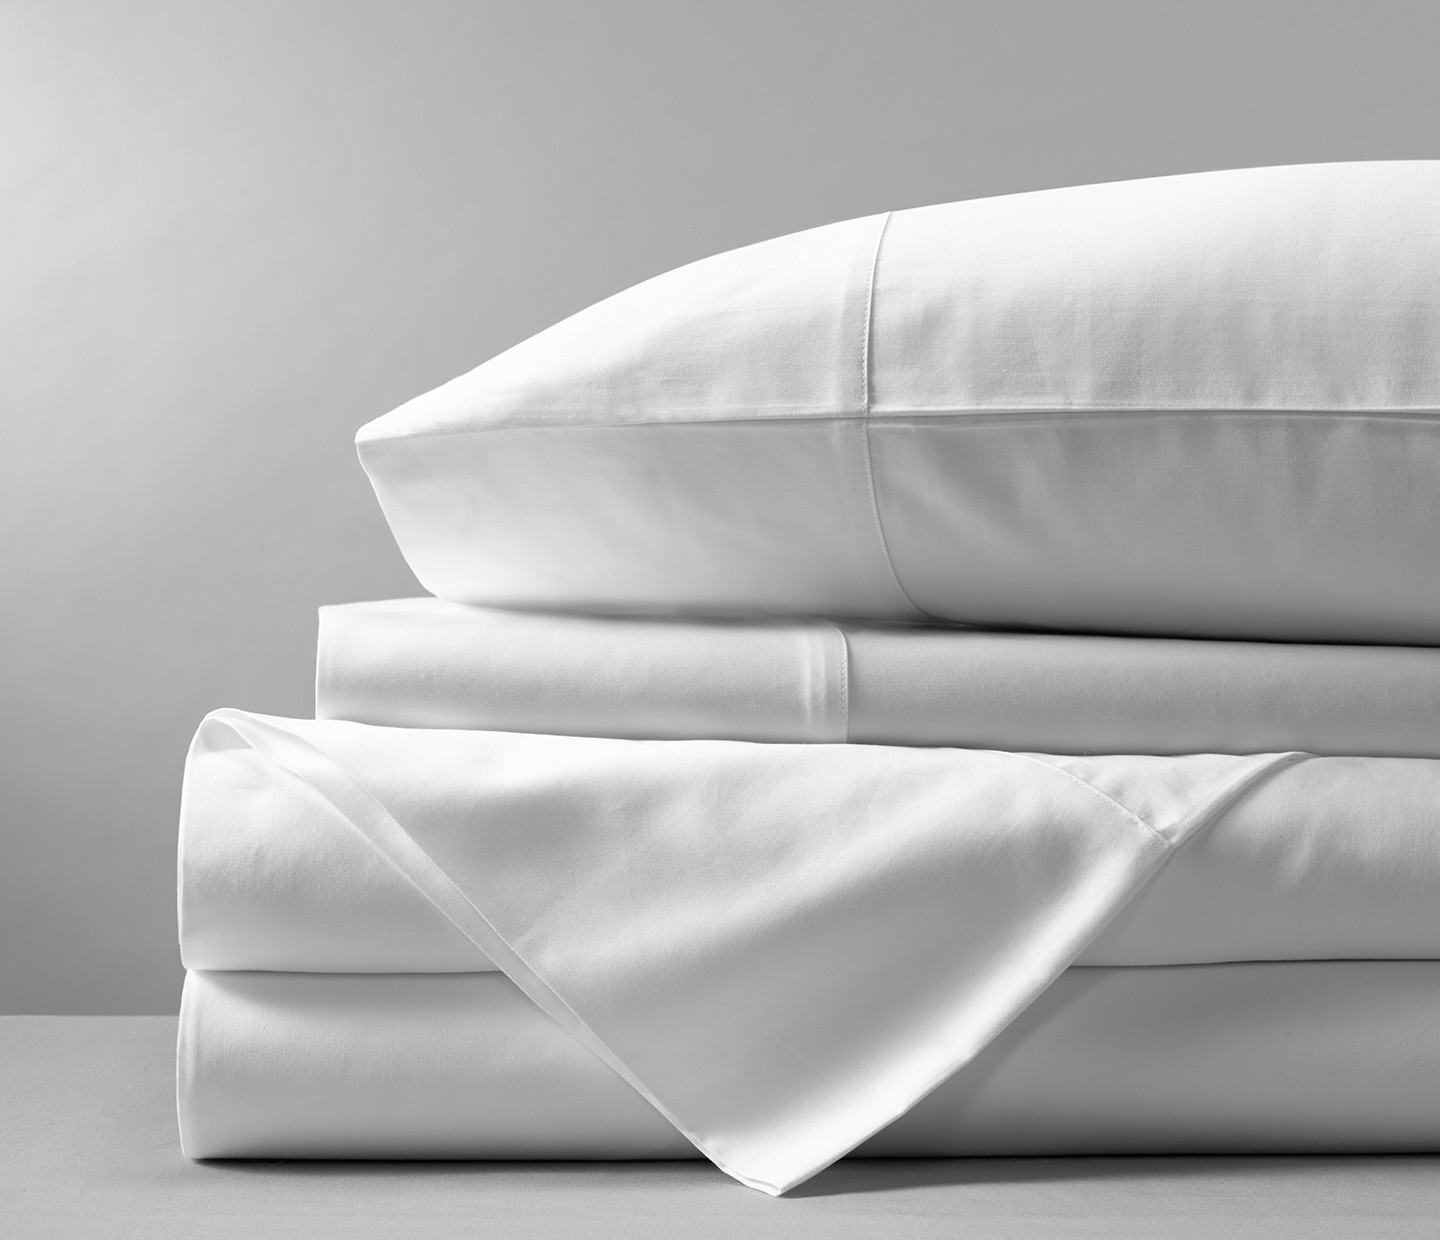 Most Comfortable Hemmed Organic Sheet Sets by Boll & Branch ®